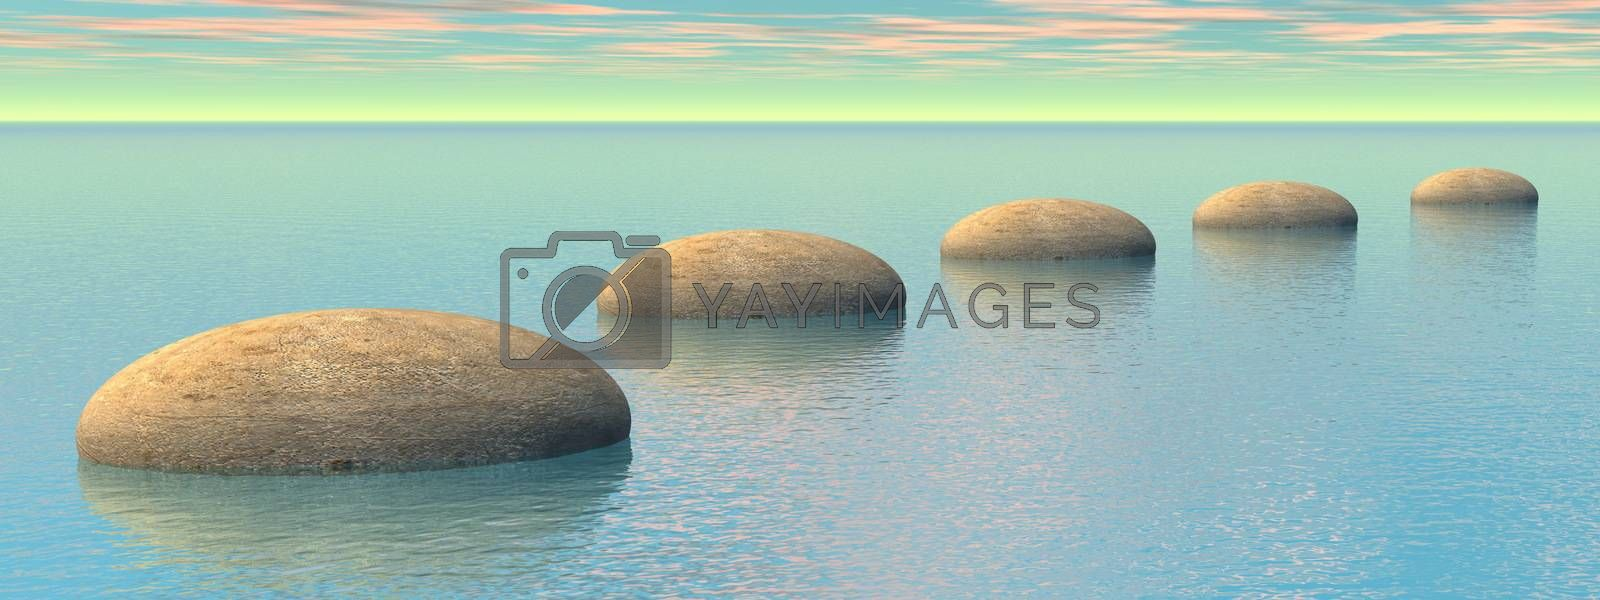 Grey stones steps upon the ocean by pink and green - 3D render